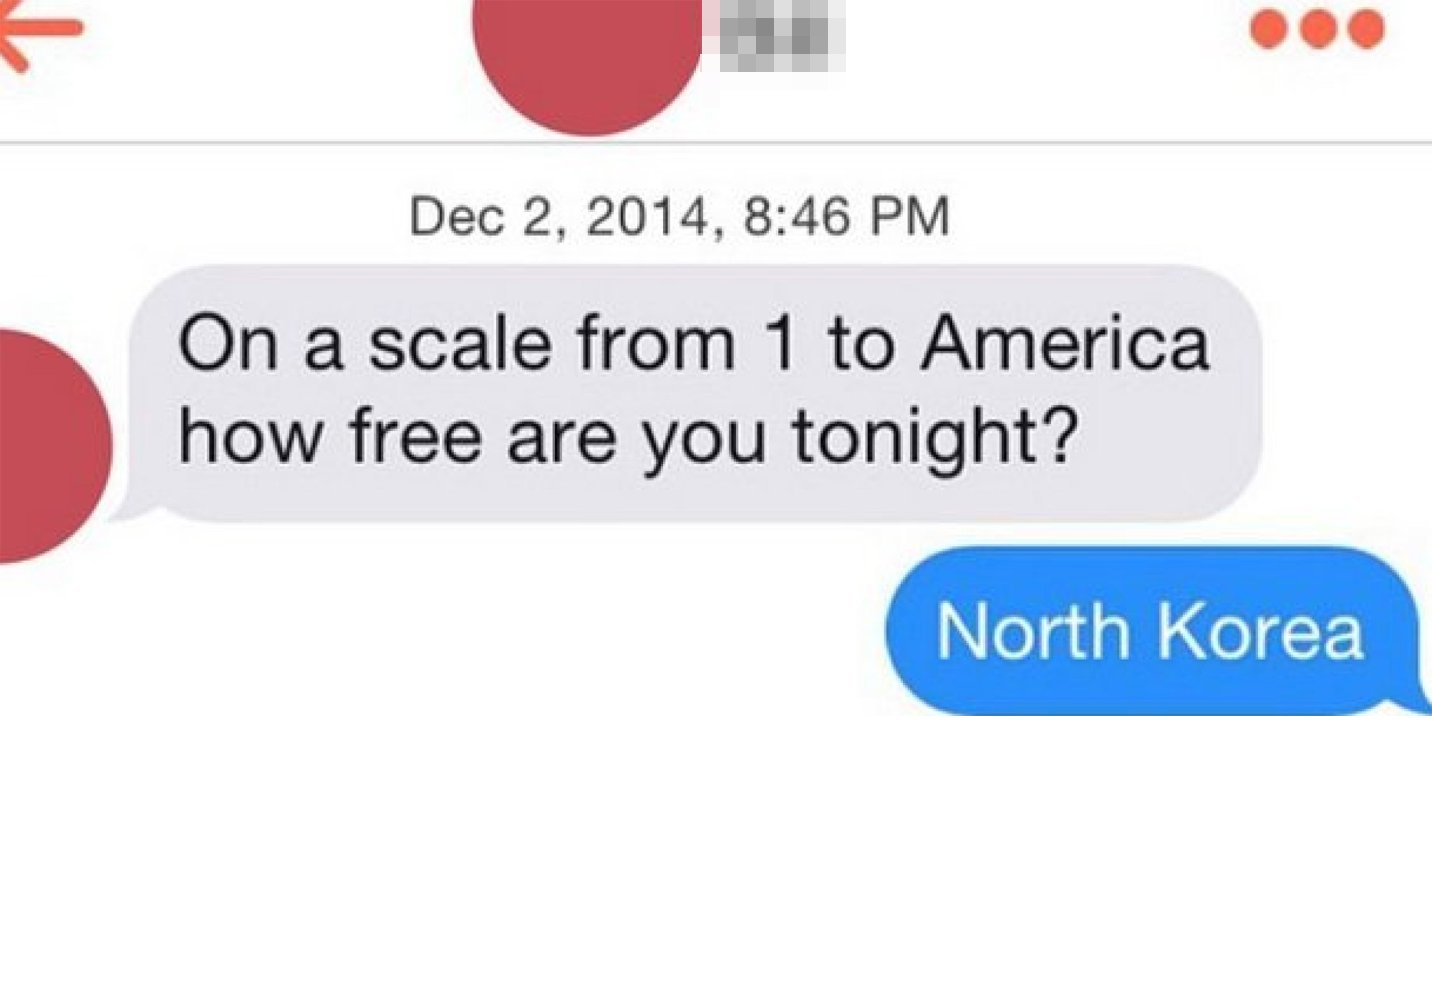 20 Tinder Pick-Up Lines That Are So Bad, They're Begging For